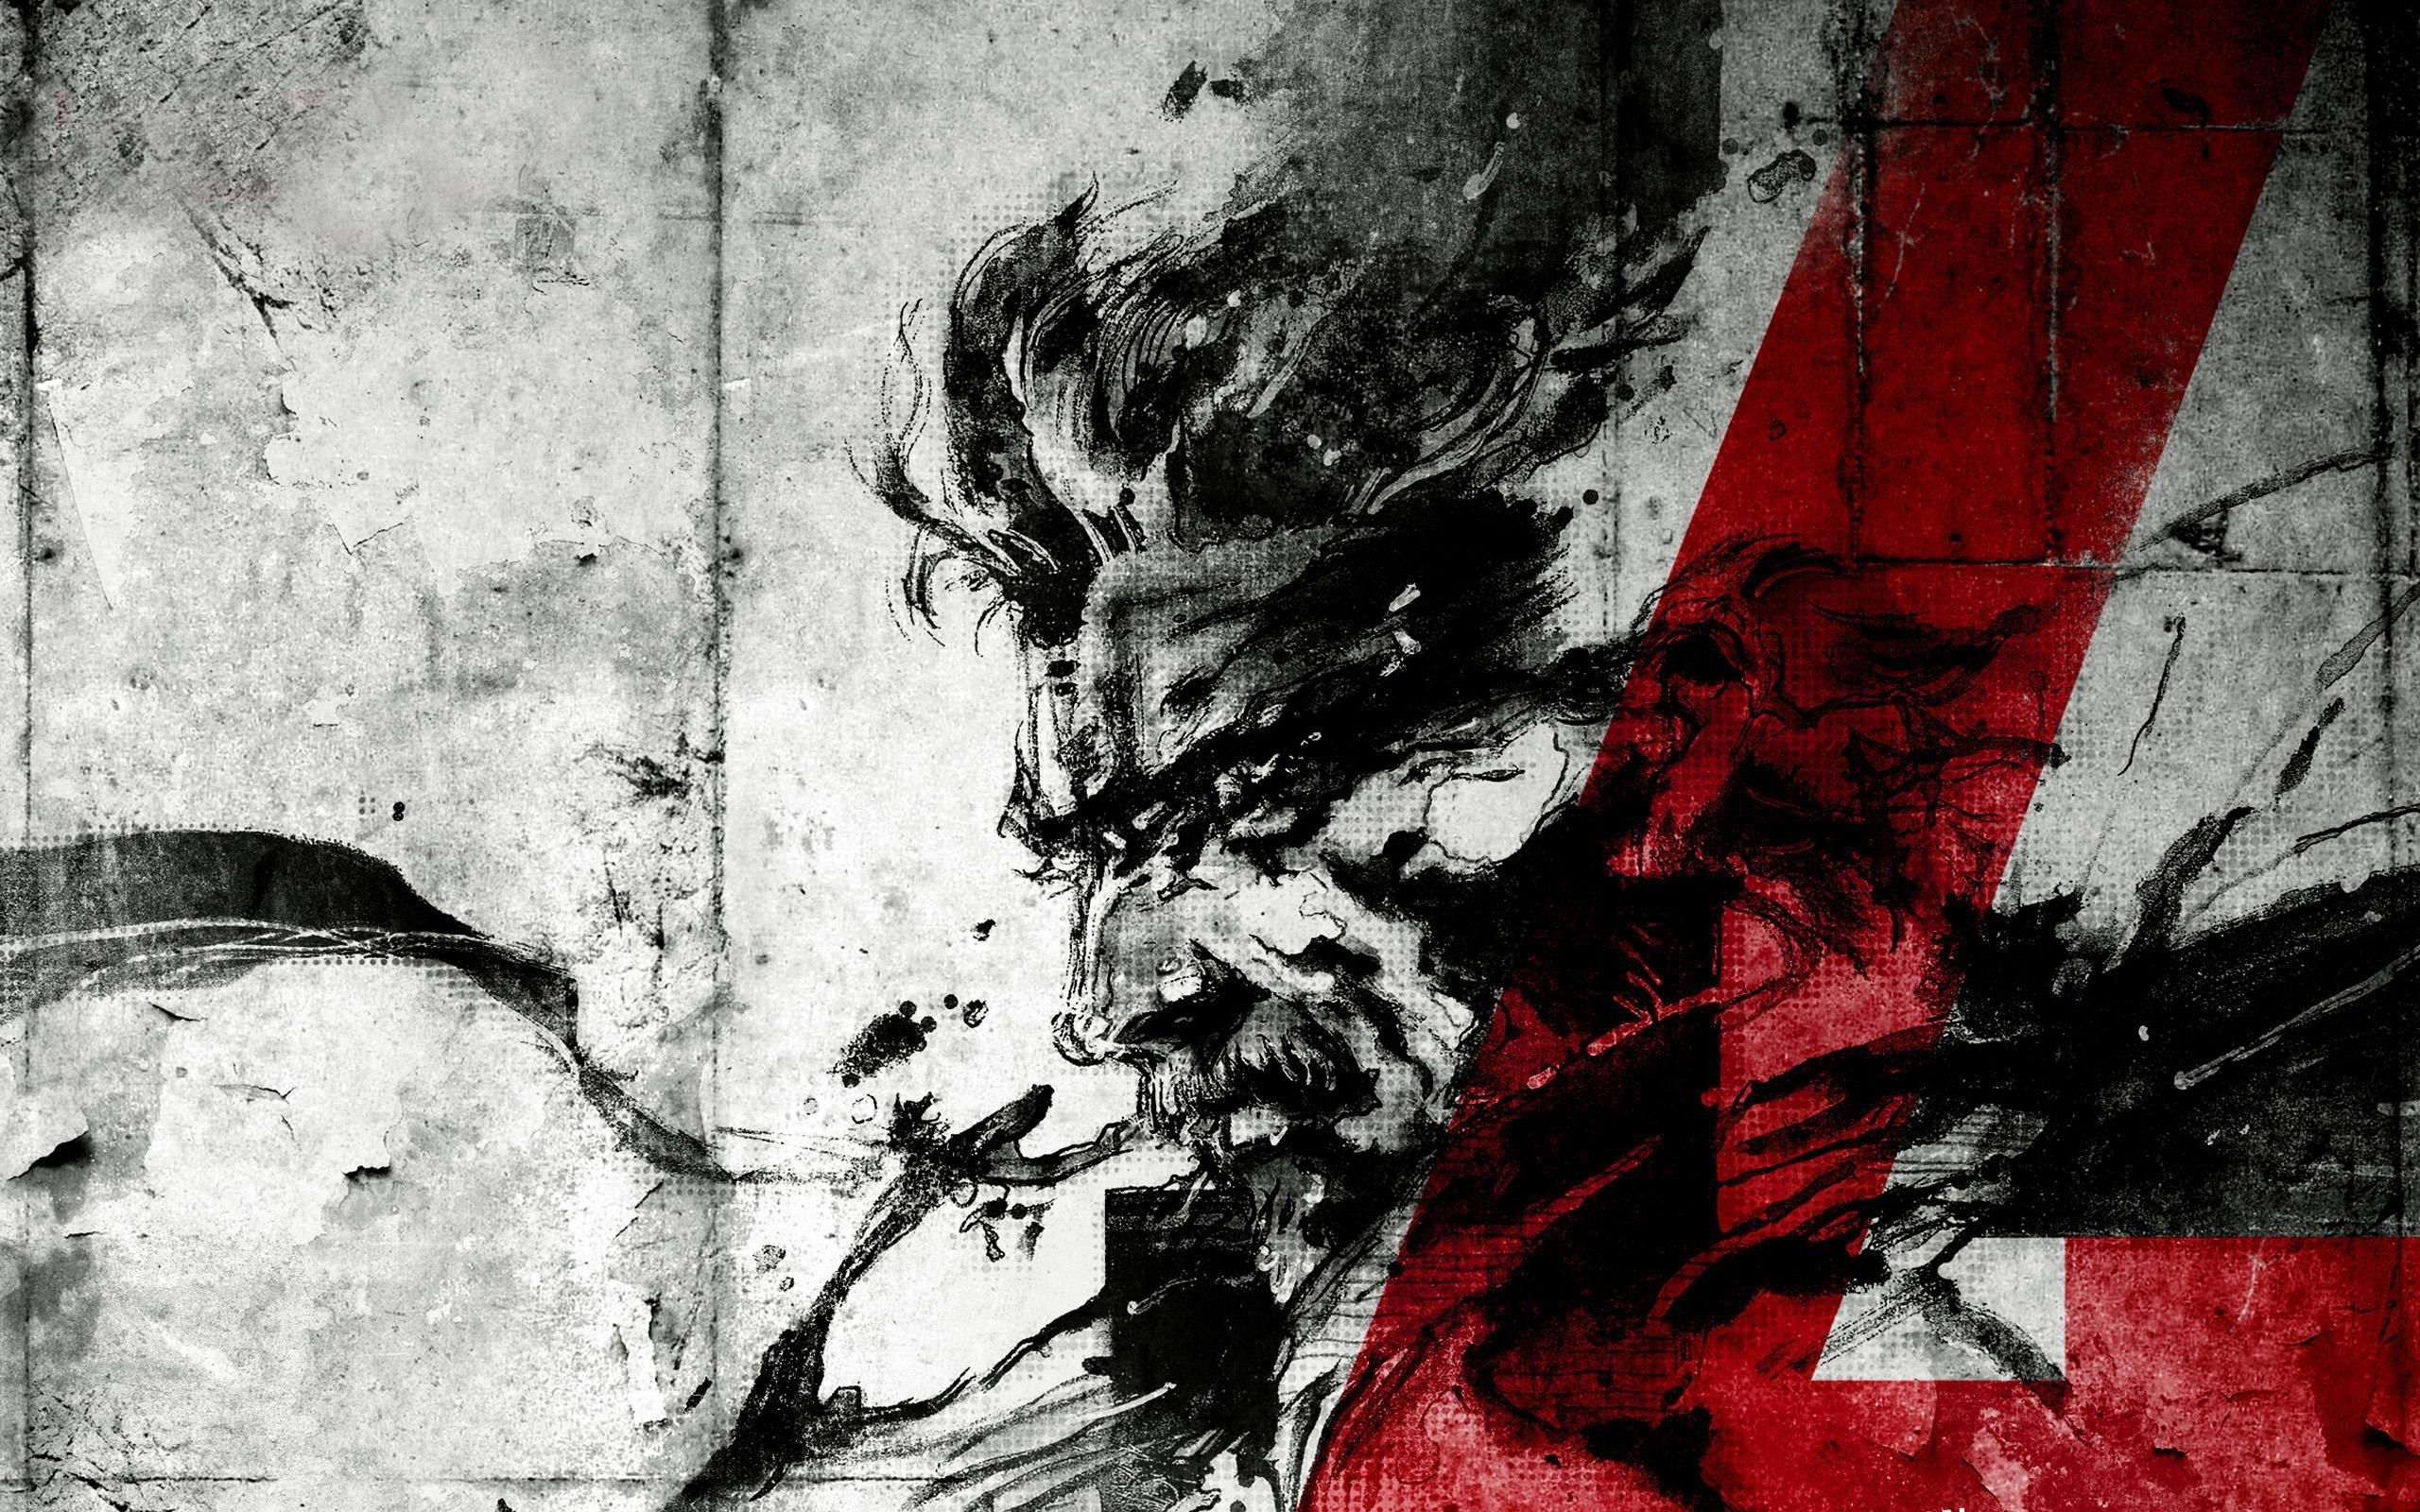 metal gear solid 4 guns of the patriots hd desktop wallpaper